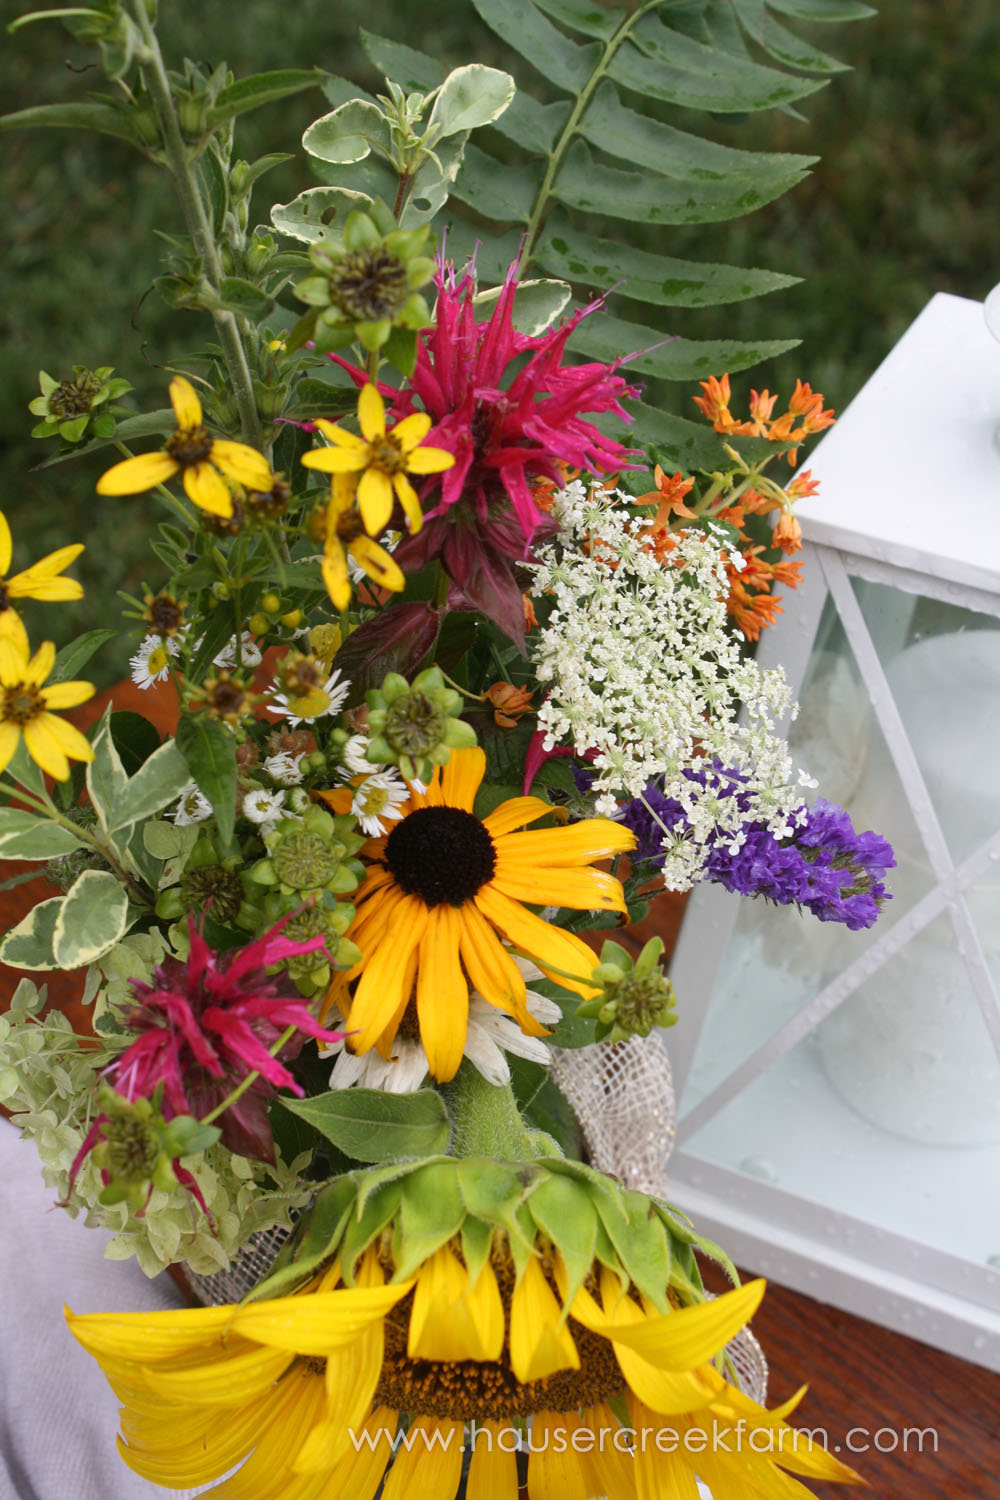 bouquet-of-wild-flowers-in-jar-for-wedding-at-hauser-creek-farm-nc-4745.jpg